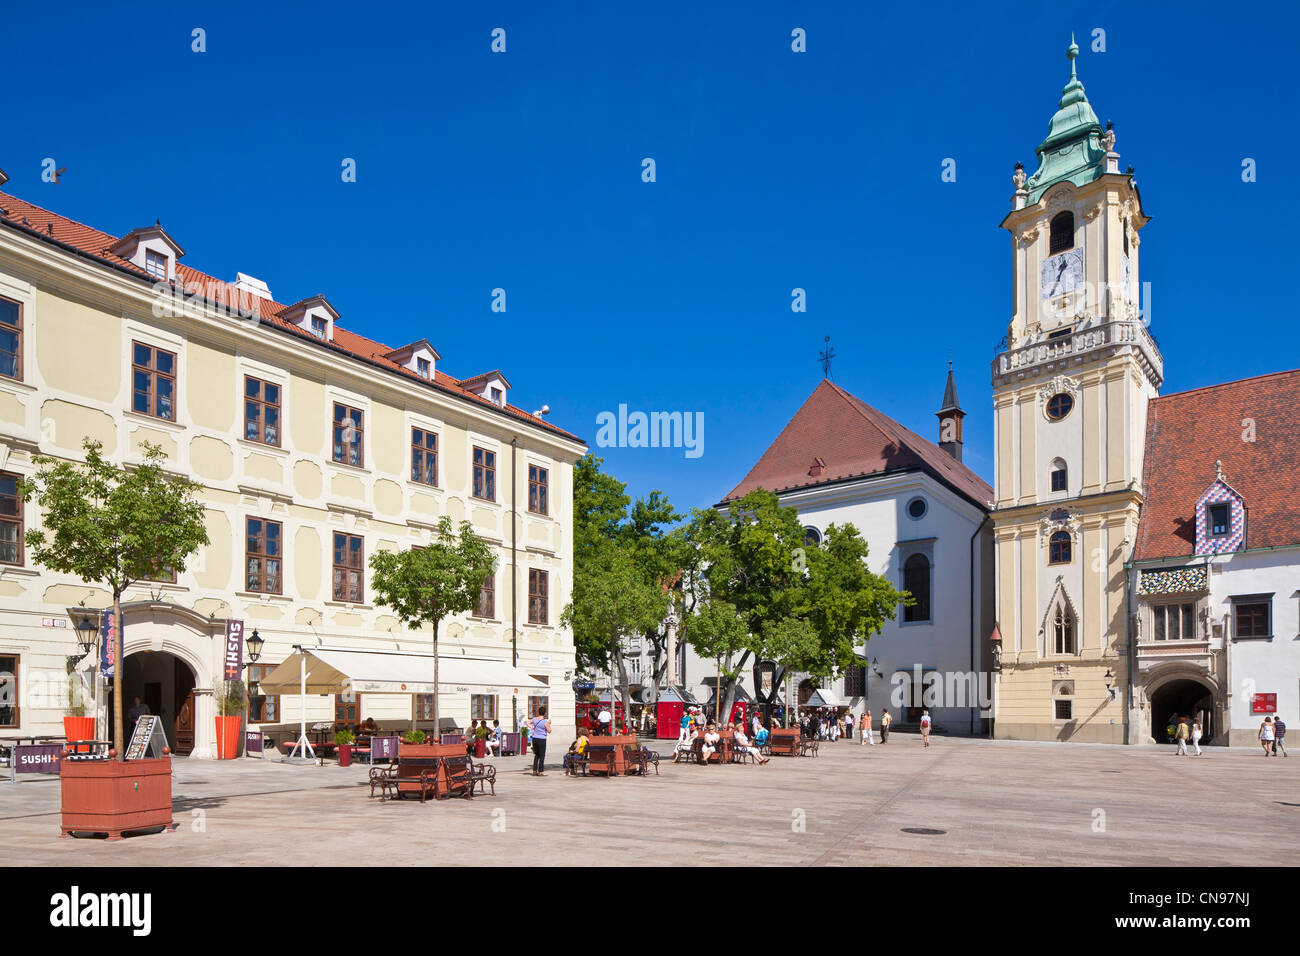 Slovakia, Bratislava, Historic center, main square with former city council on the right and its tower dating from - Stock Image